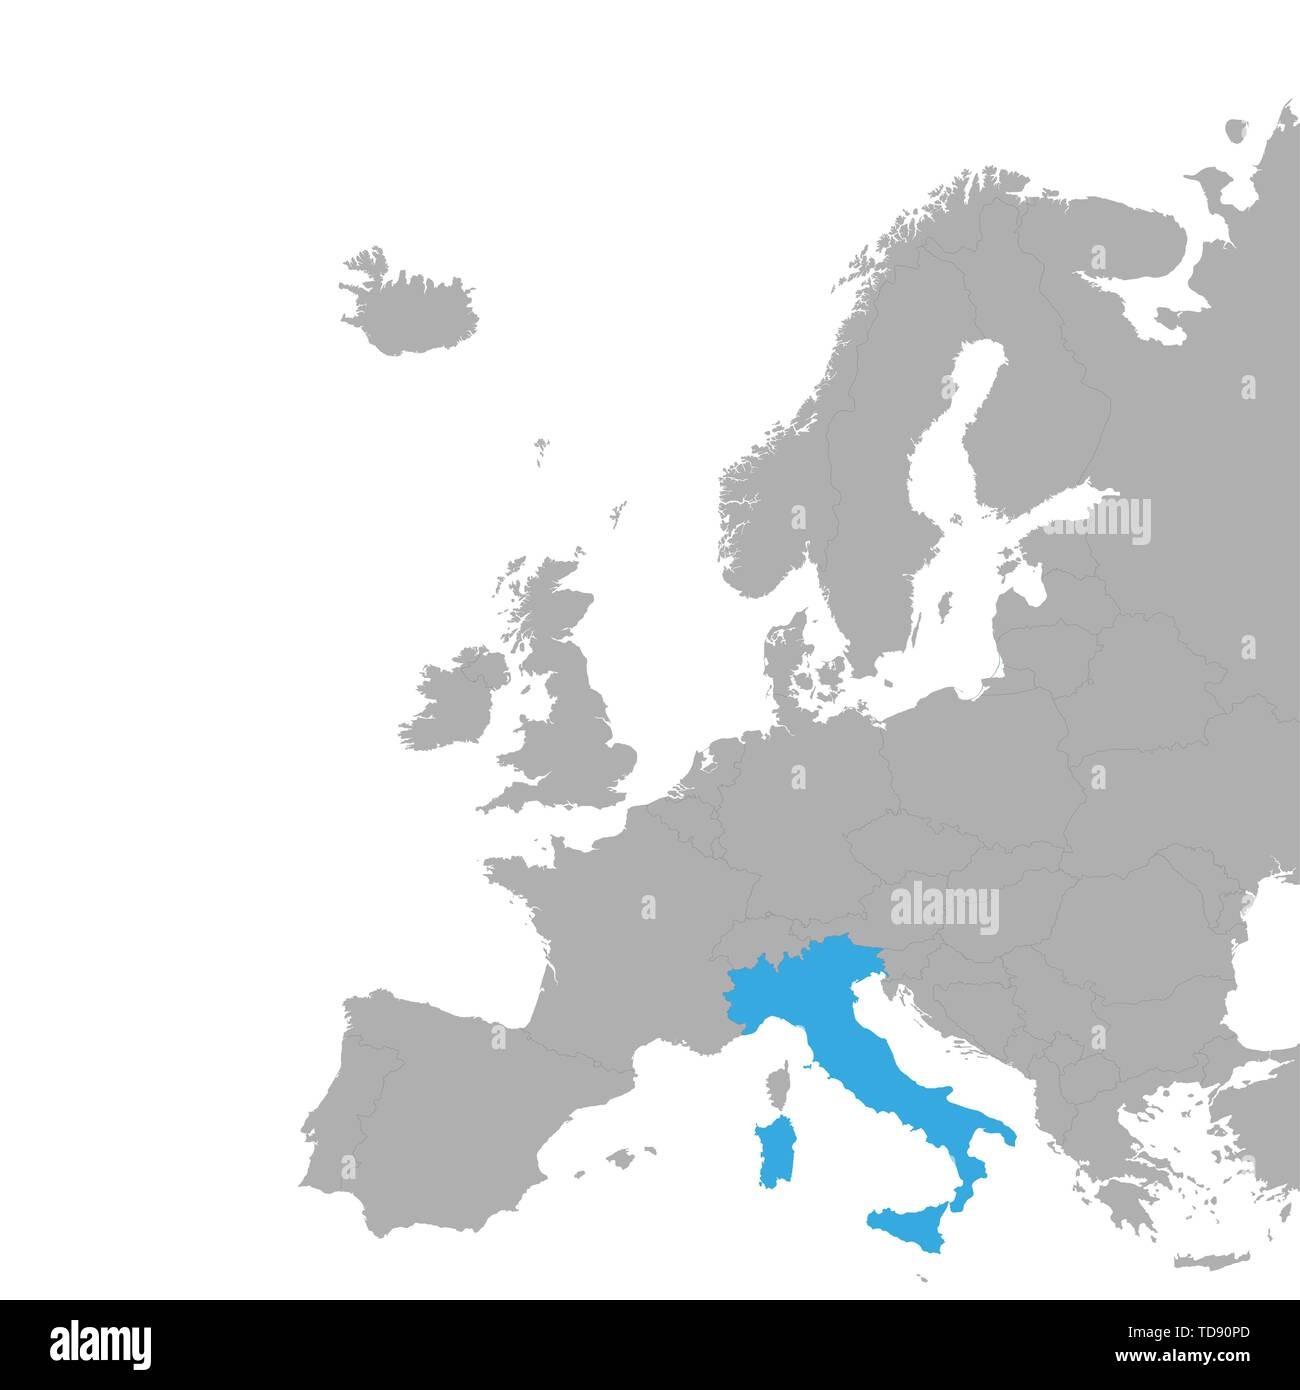 The Map Of Italy Is Highlighted In Blue On The Map Of Europe